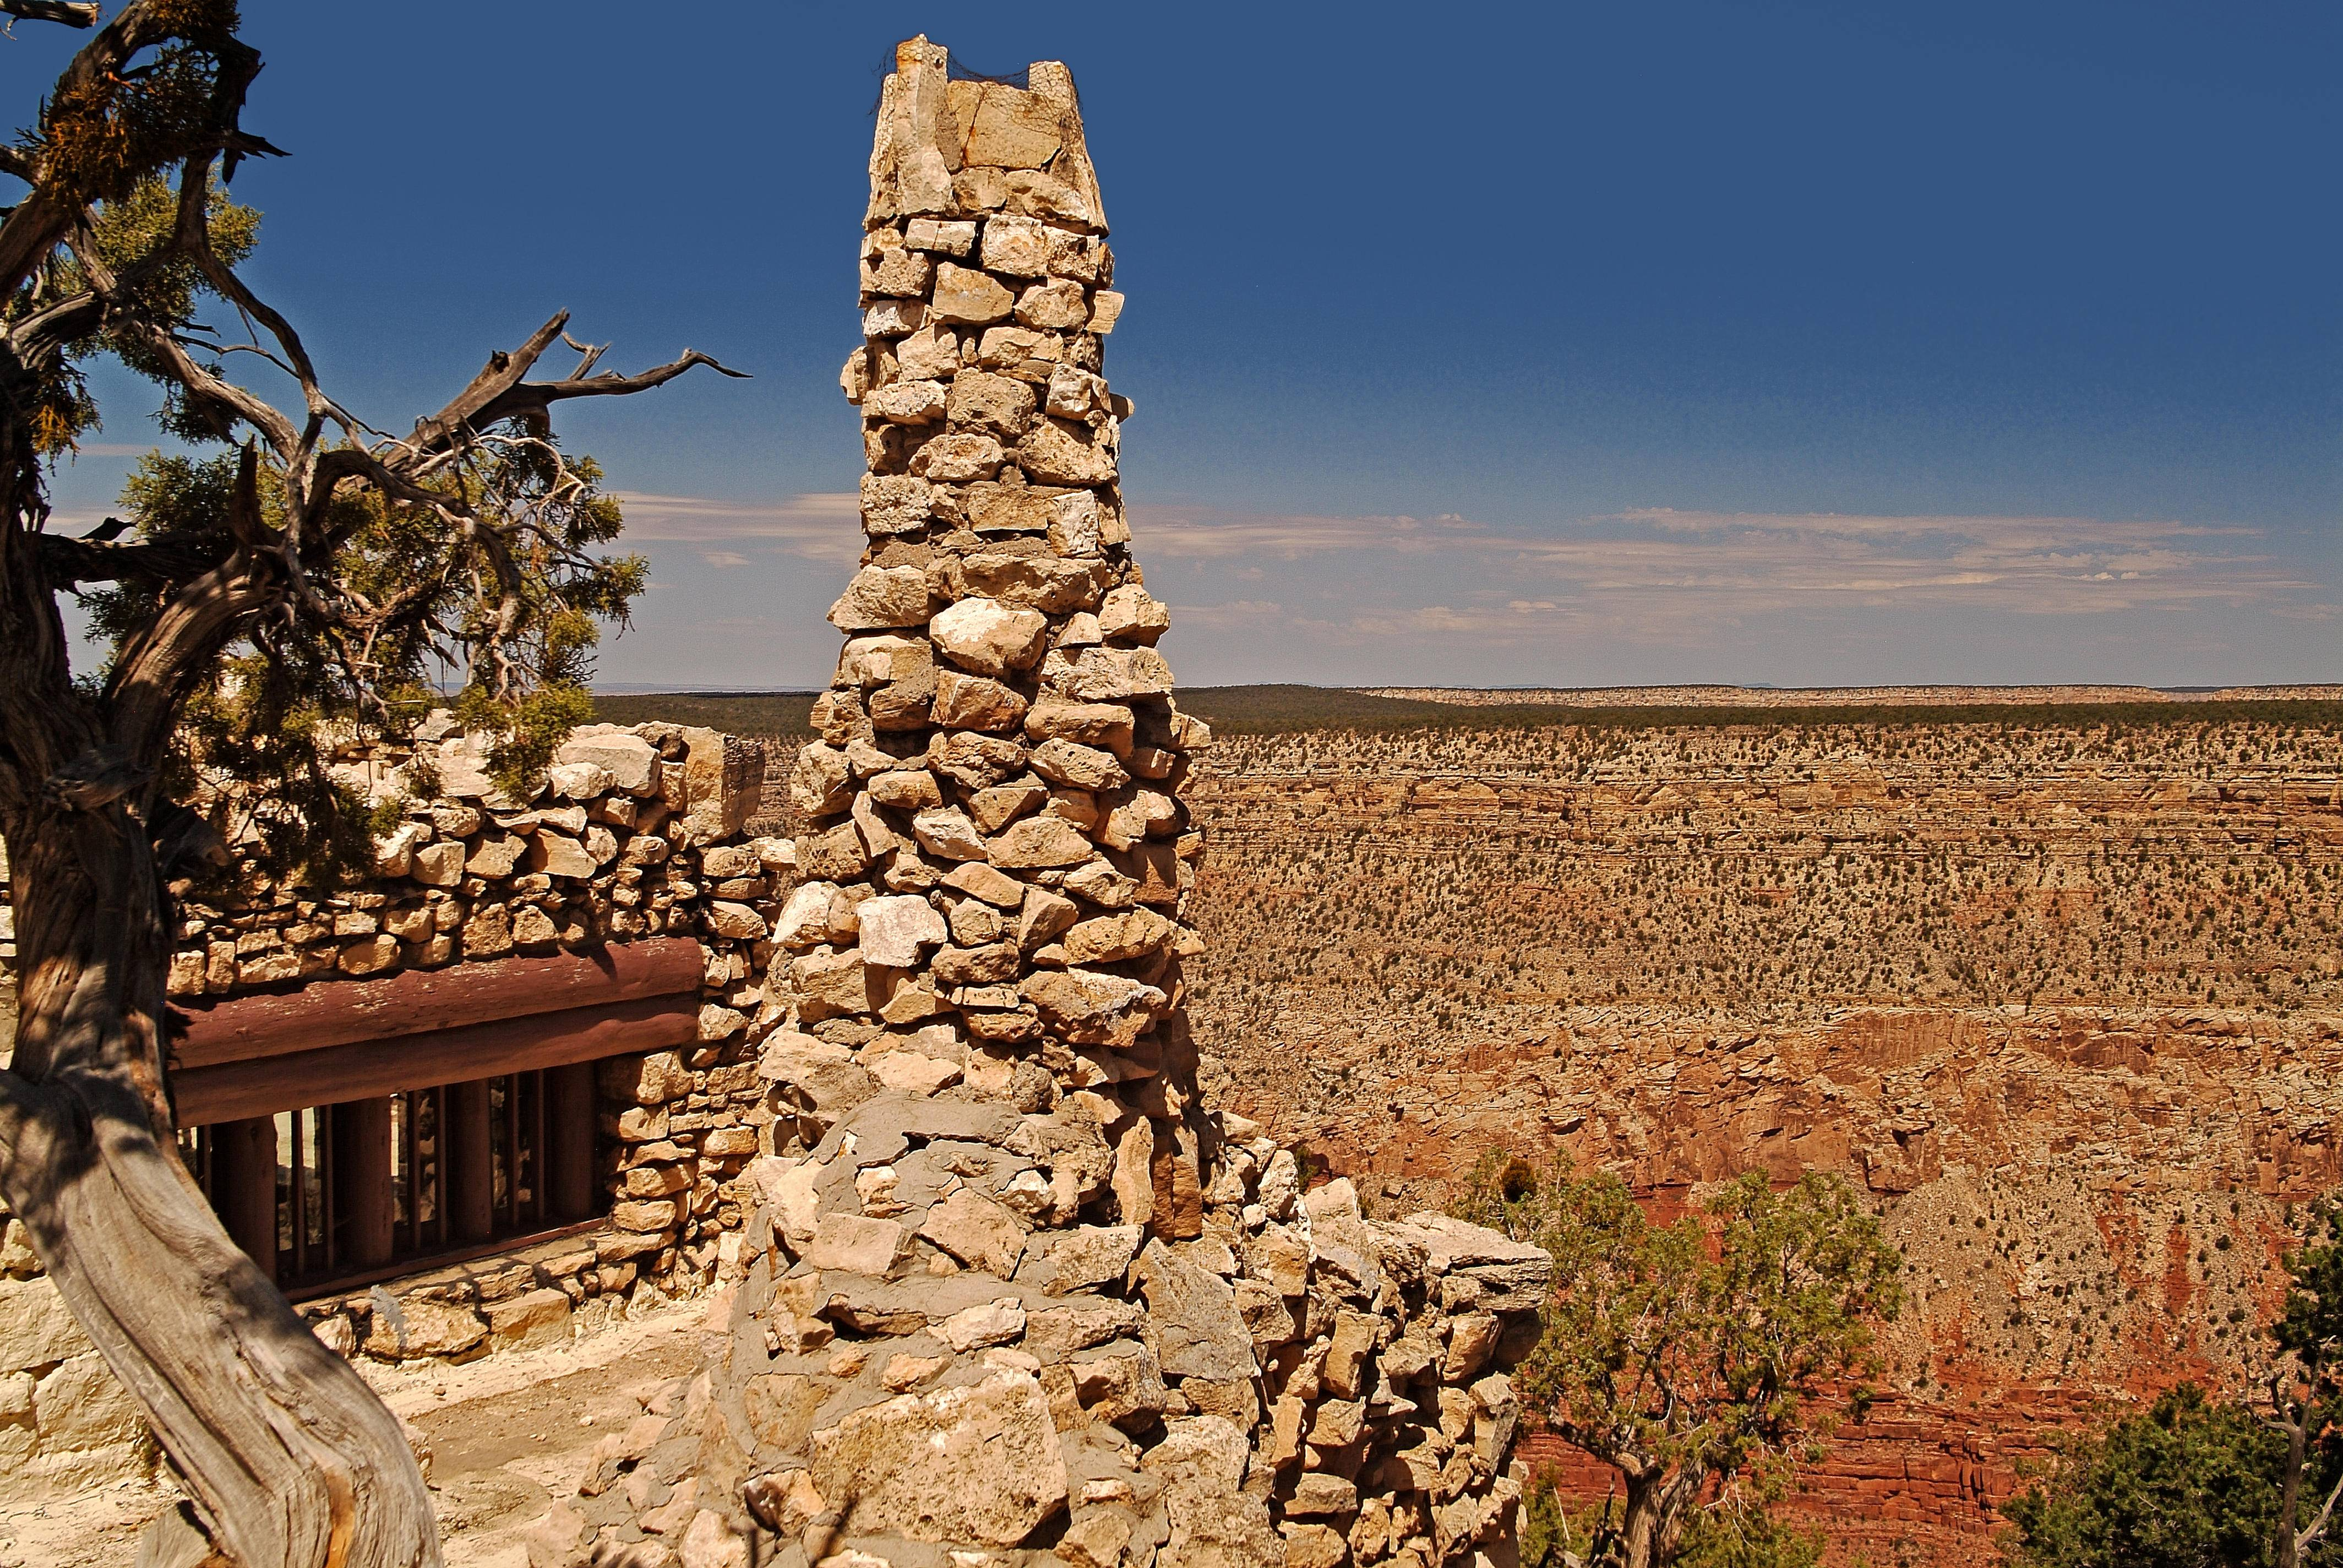 Hermits Rest, a historic century-old structure west of Grand Canyon Village, is one of a number of attractions available for sightseeing at the South Rim.